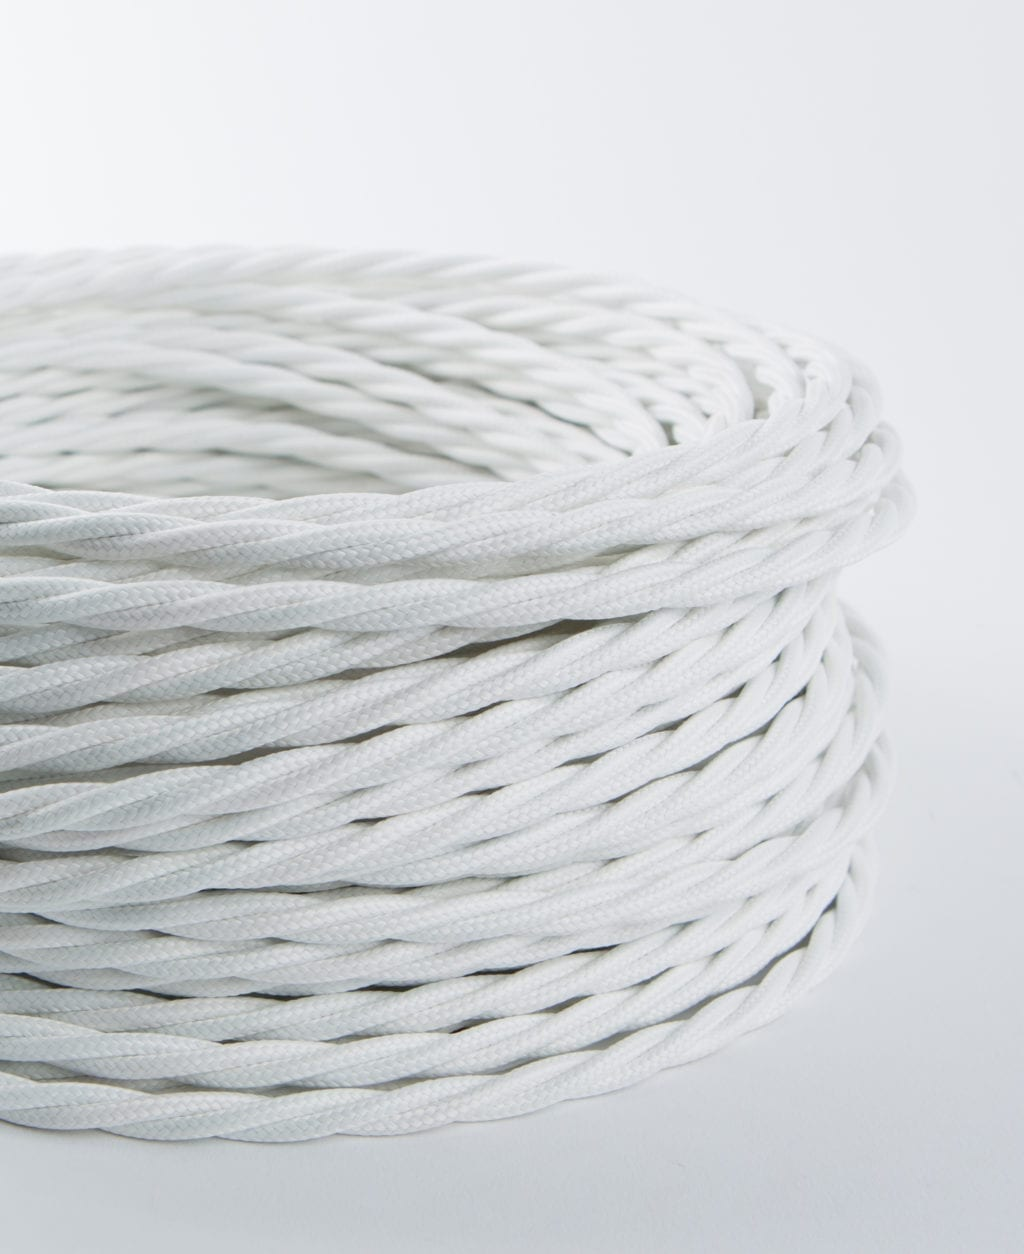 closeup of white twisted fabric cable coil against white background